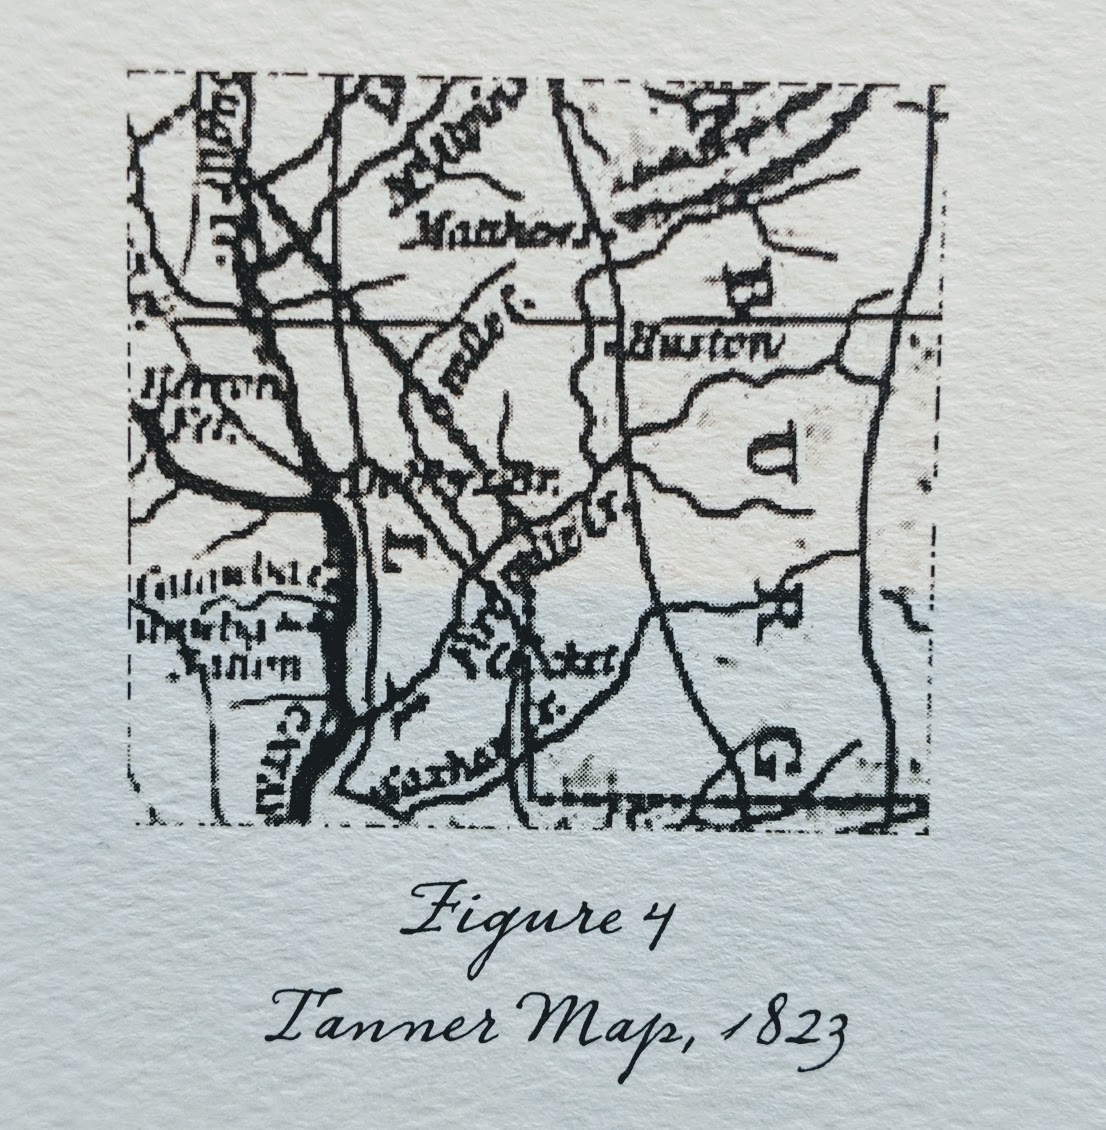 Twenty-five years later, - The 1823 Tanner map (Figure 4, Right) gives evidence that stream names can change, for Tanner calls 12 Mile Creek